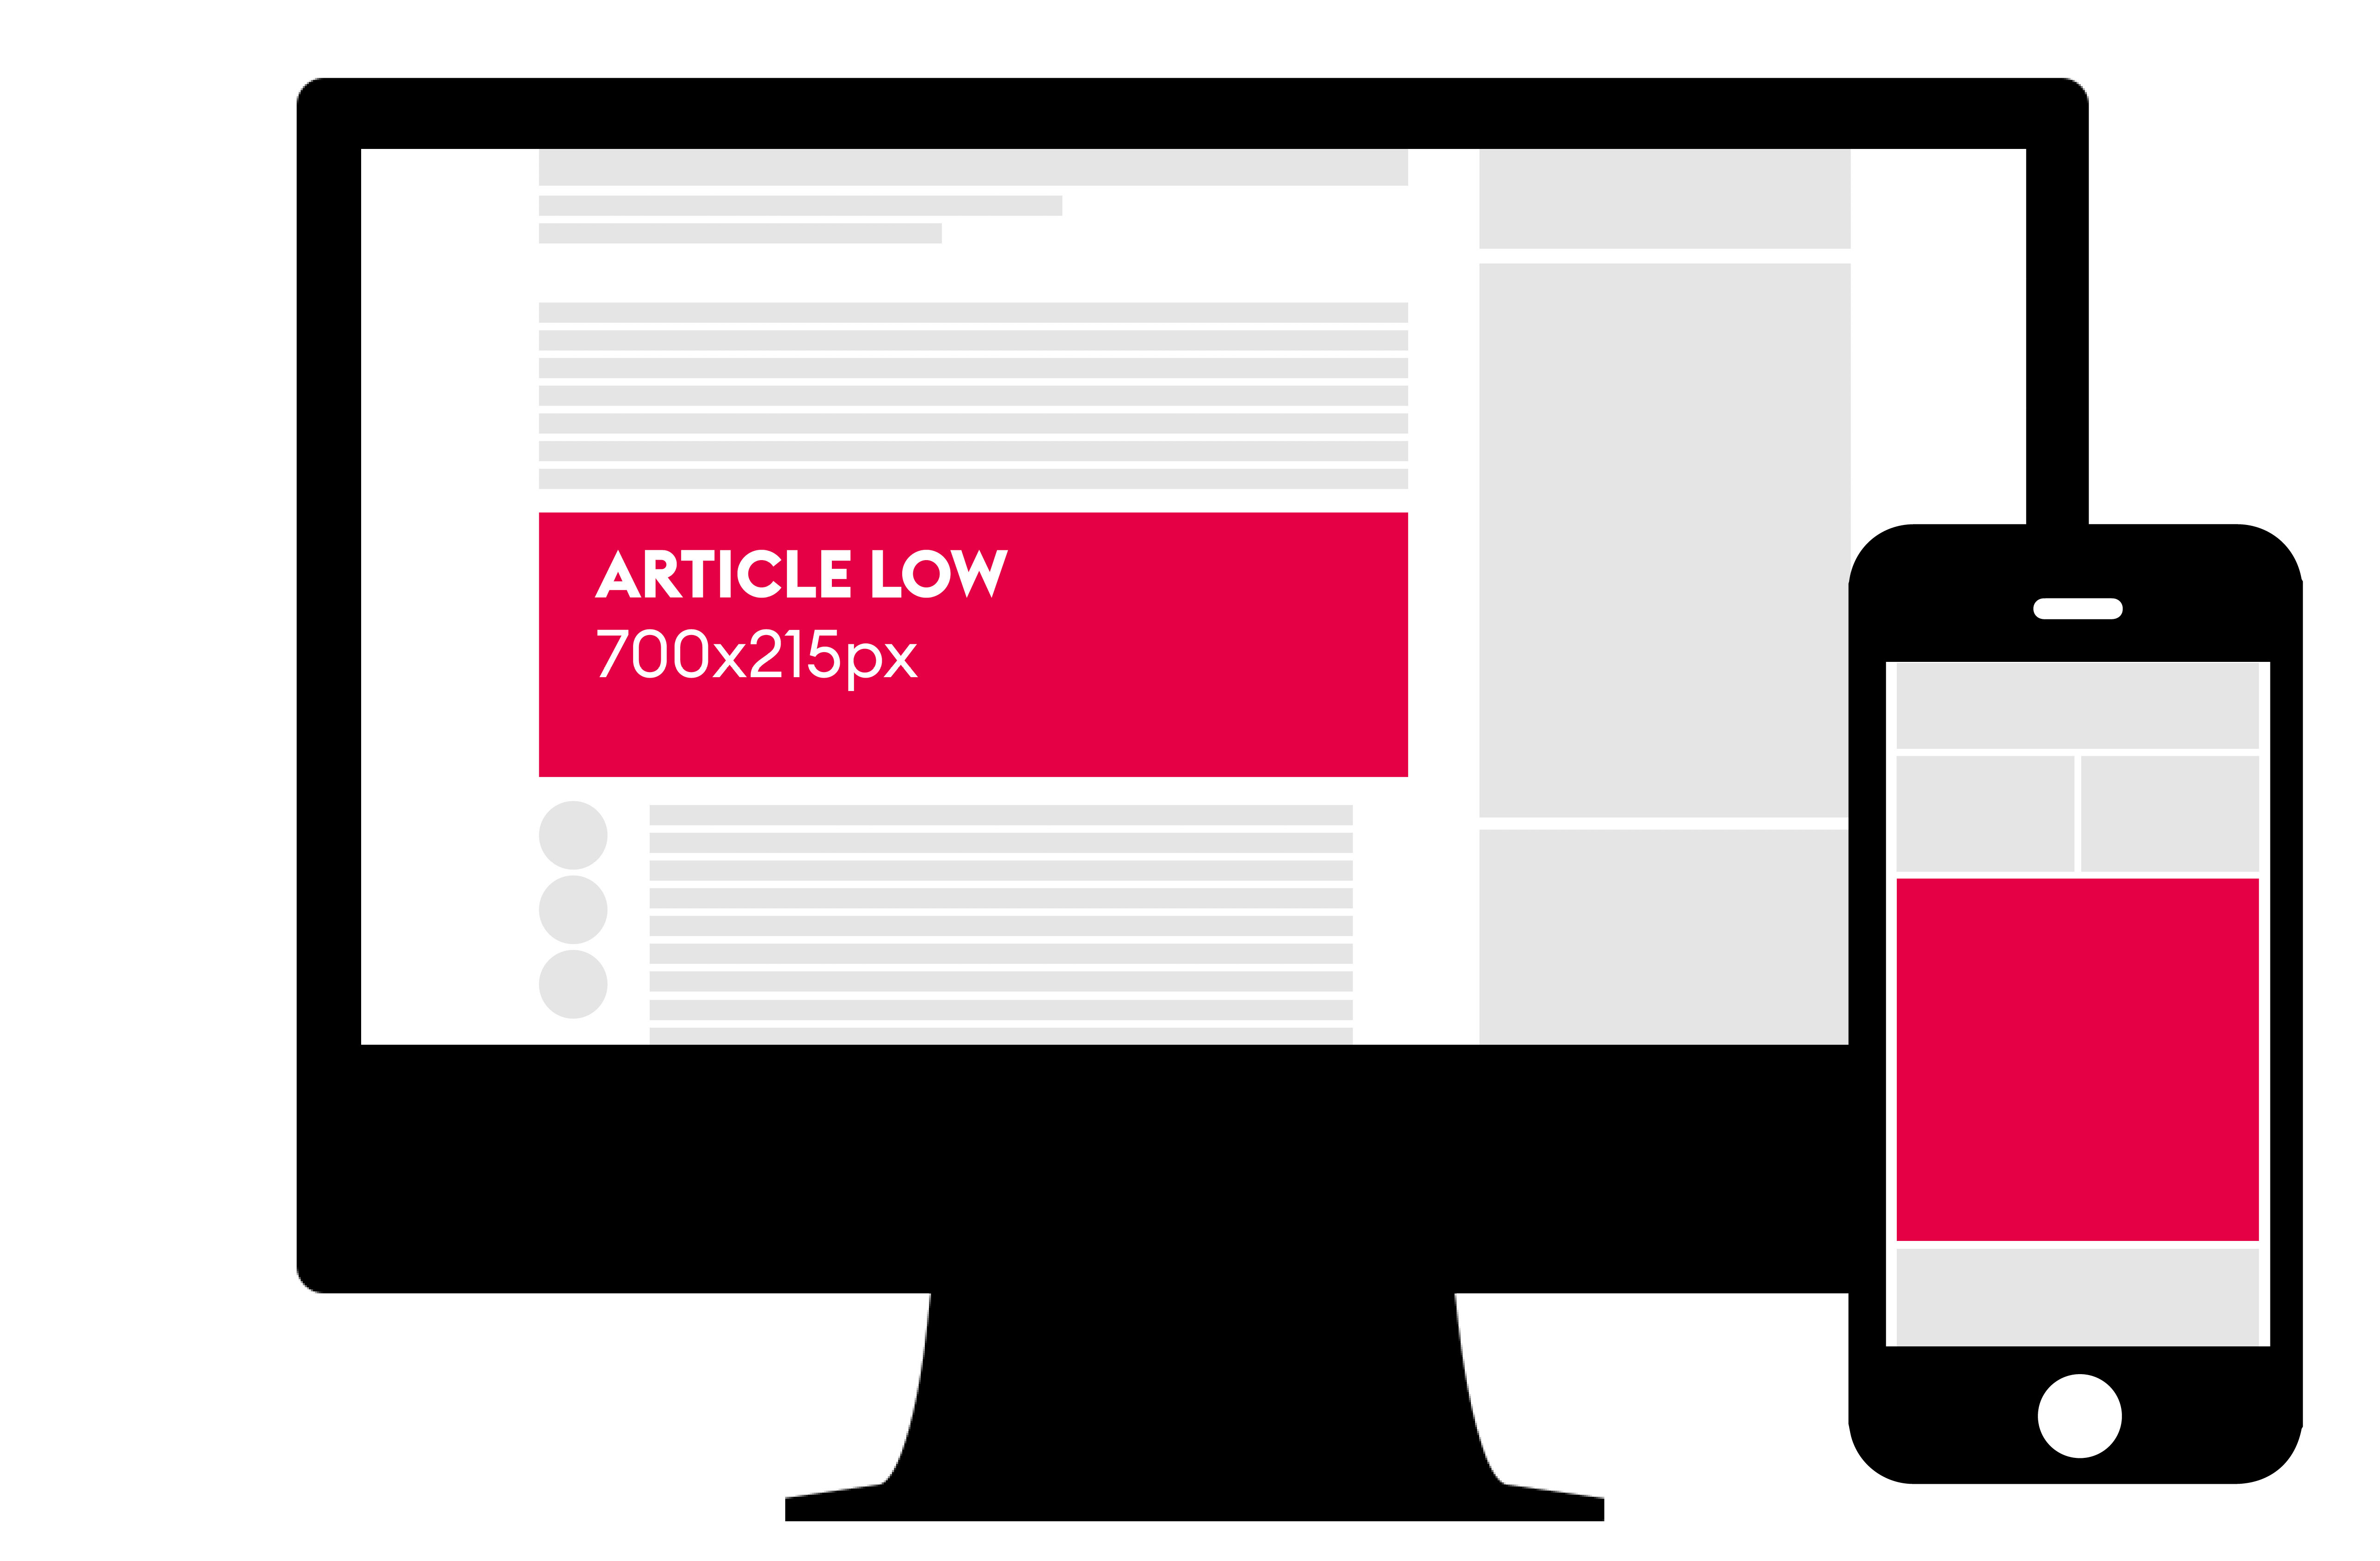 ARTICLE LOW